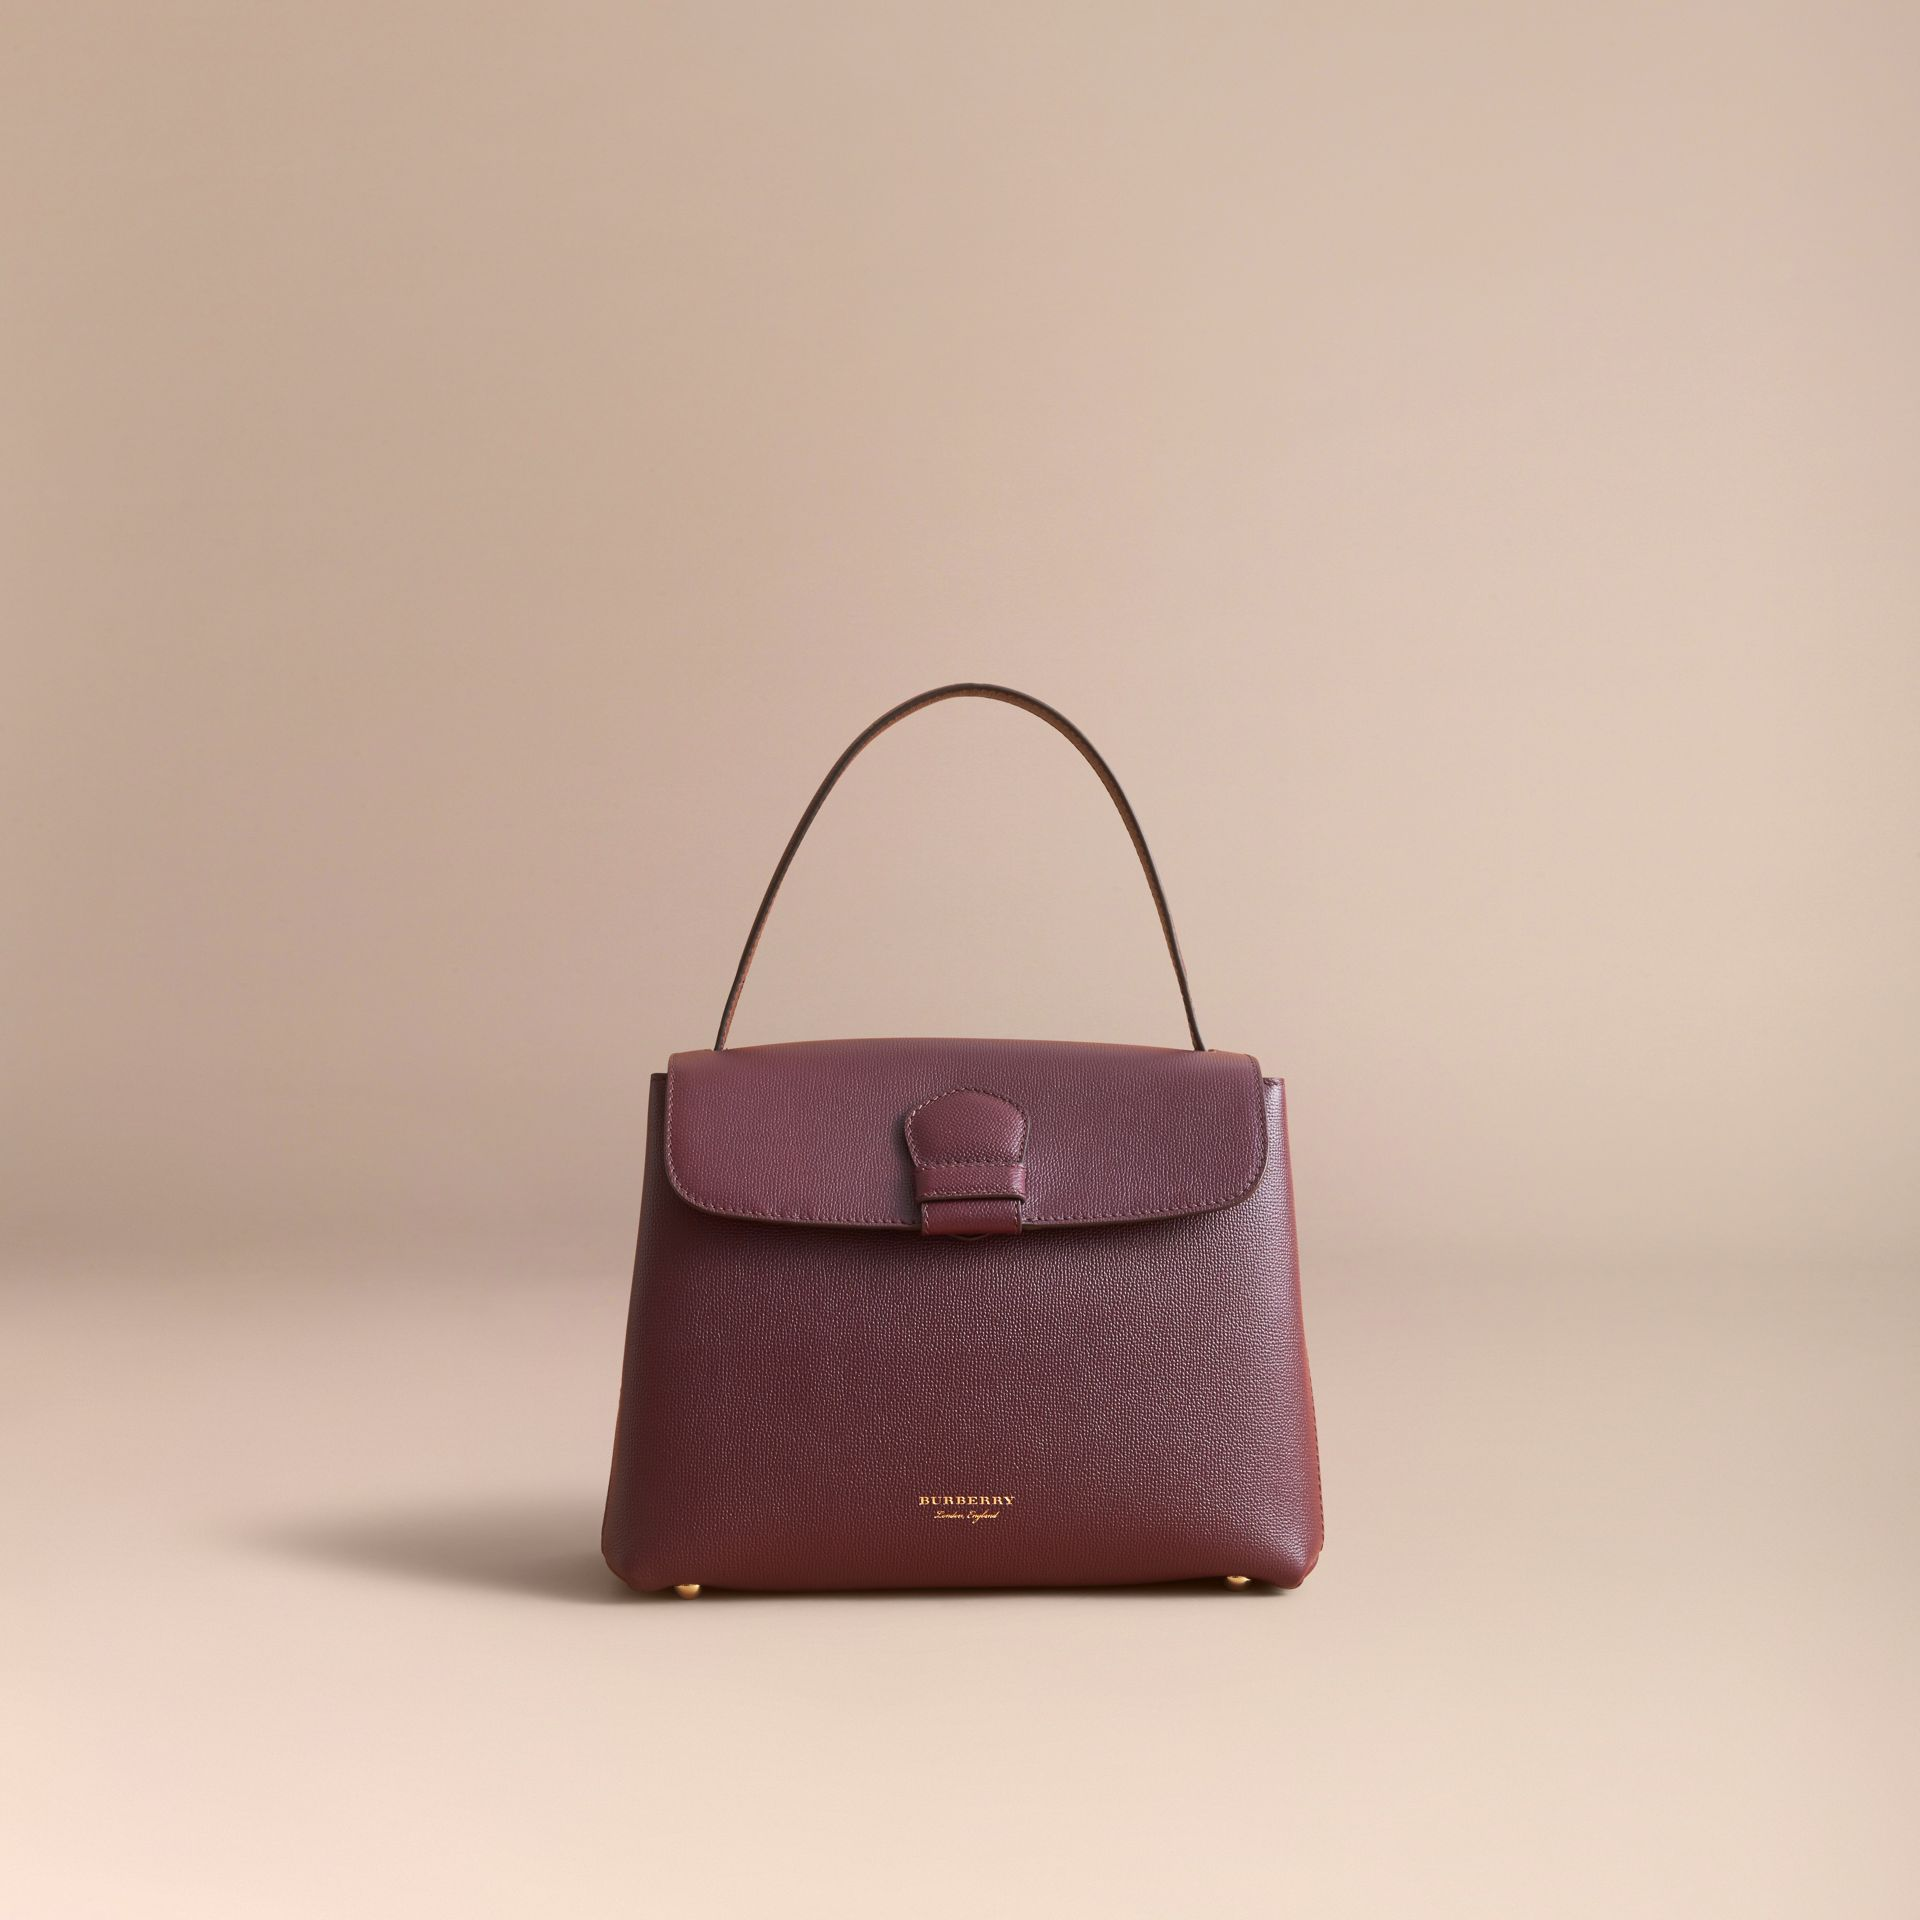 Medium Grainy Leather and House Check Tote Bag in Mahogany Red - Women | Burberry Australia - gallery image 8